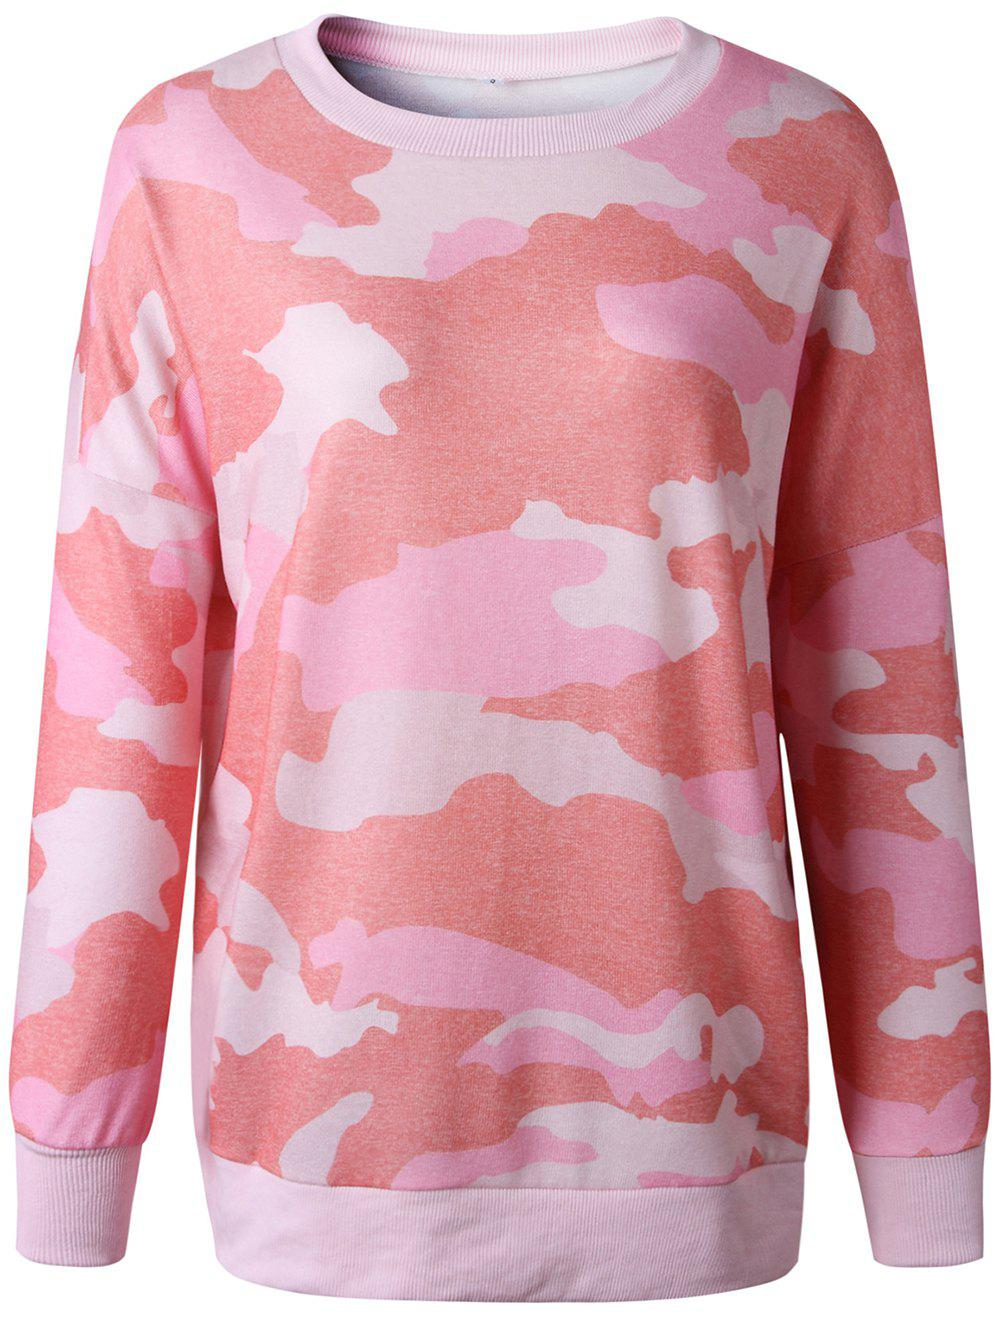 Outfits Womens Casual  Camouflage Long Sleeve Jumper Knitwear Tops T-Shirts